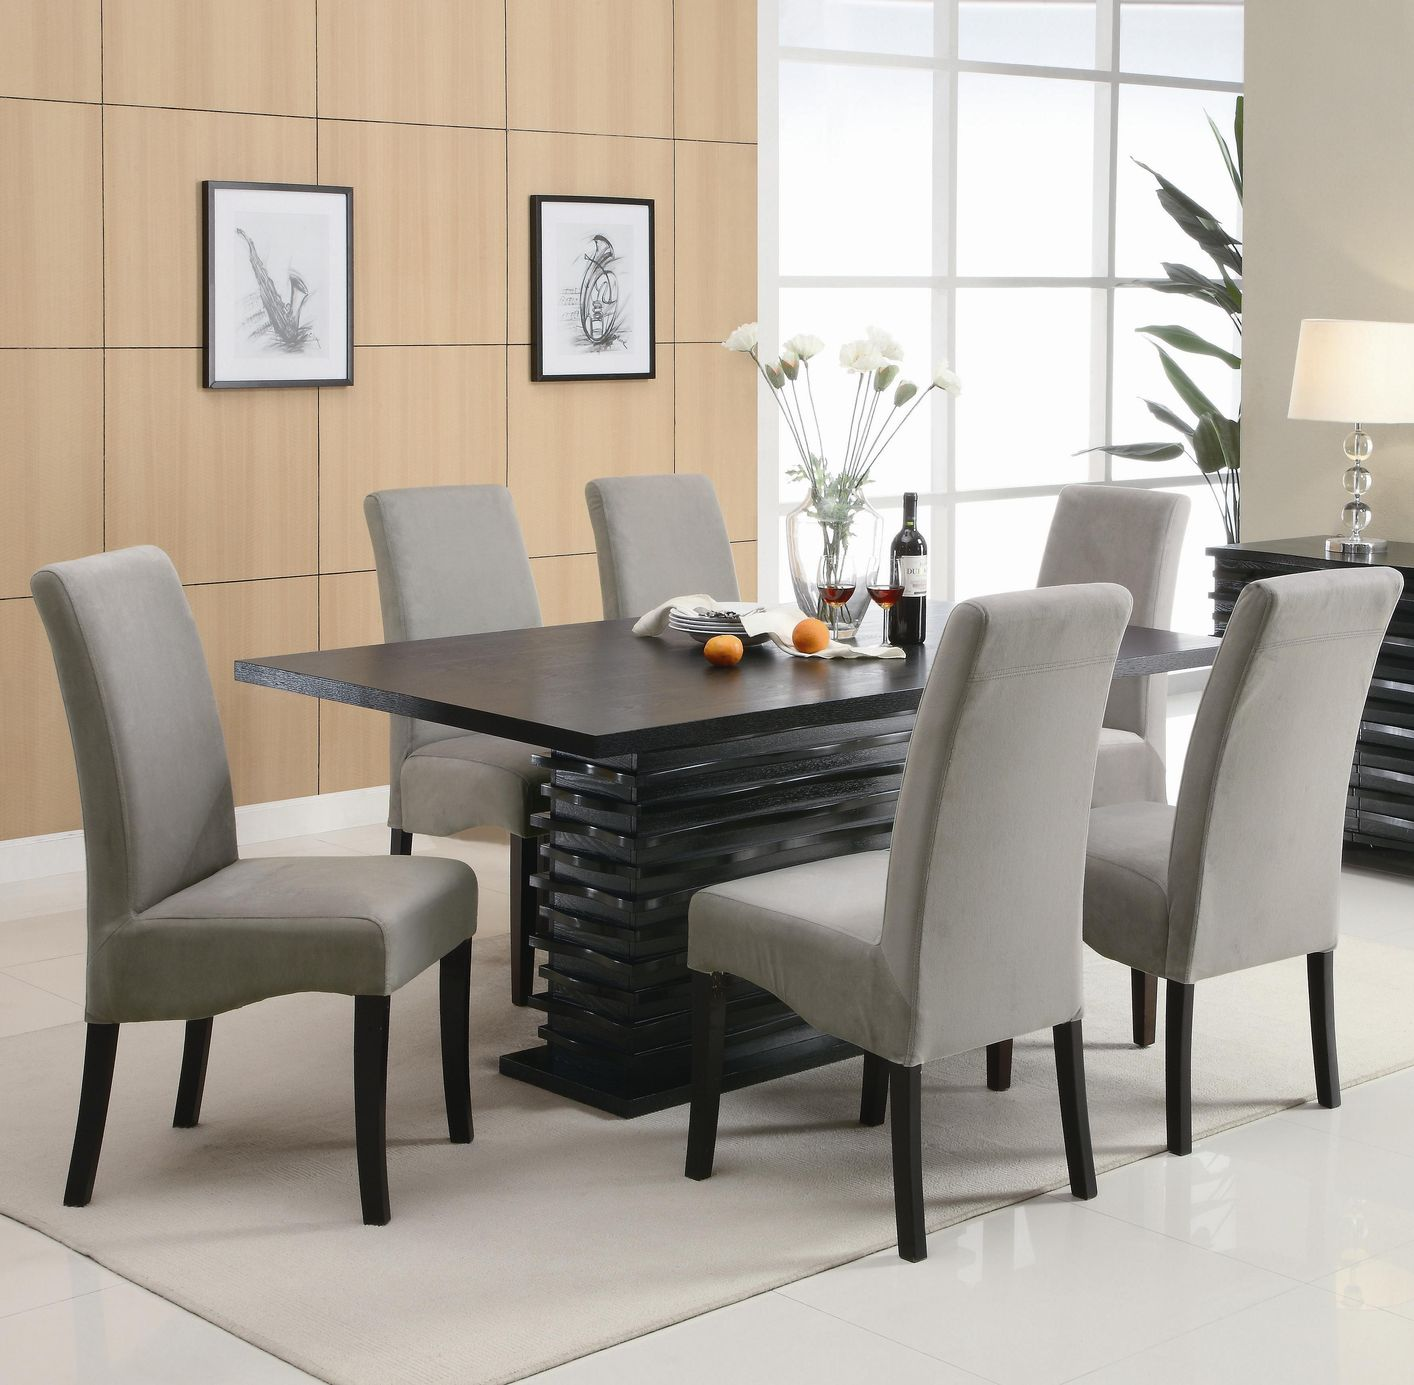 Faux Leather Dining Room Chairs Extravagant Rounded Frosted Glass Top Leather Dinette Tables And